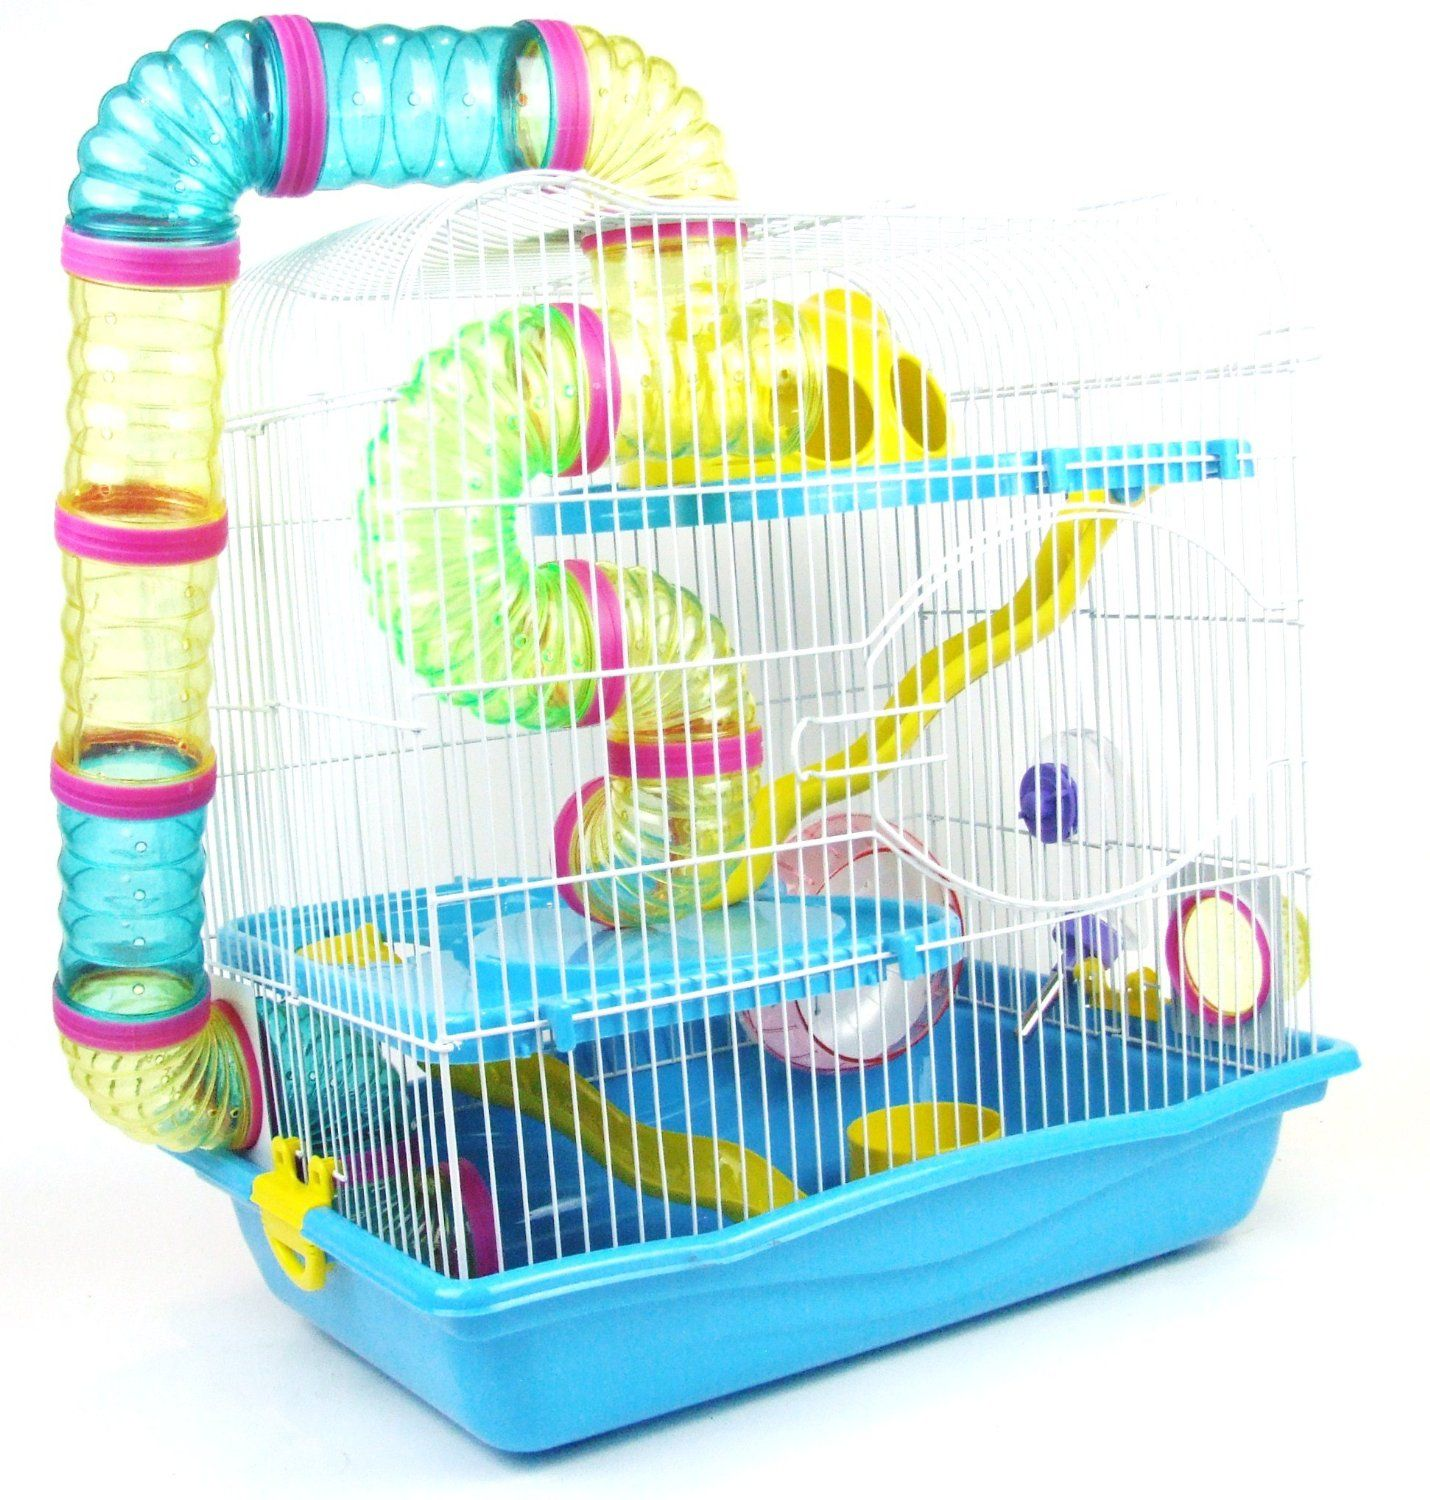 Aquarline San Marino Small Animal Cage Suitable For Syrian Hamsters Rats Gerbils And Other Small Animals Large B Hamster Accessories Hamster Syrian Hamster